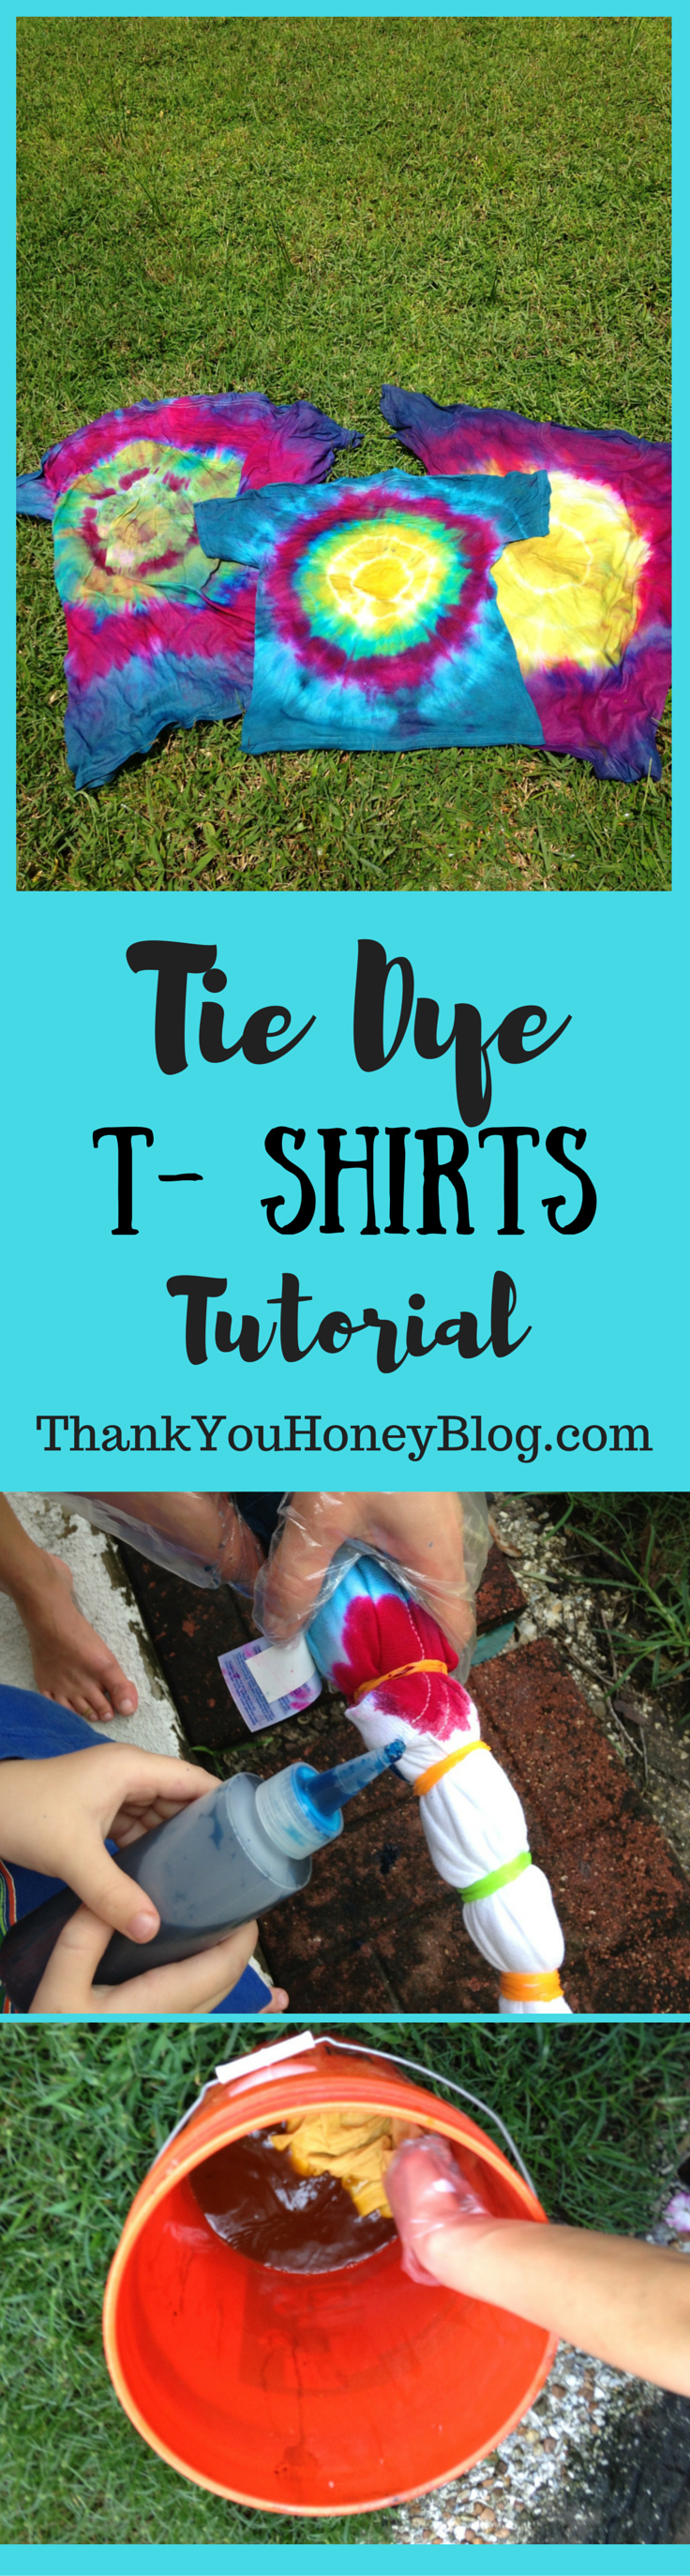 Tie Die T-Shirts Tutorial